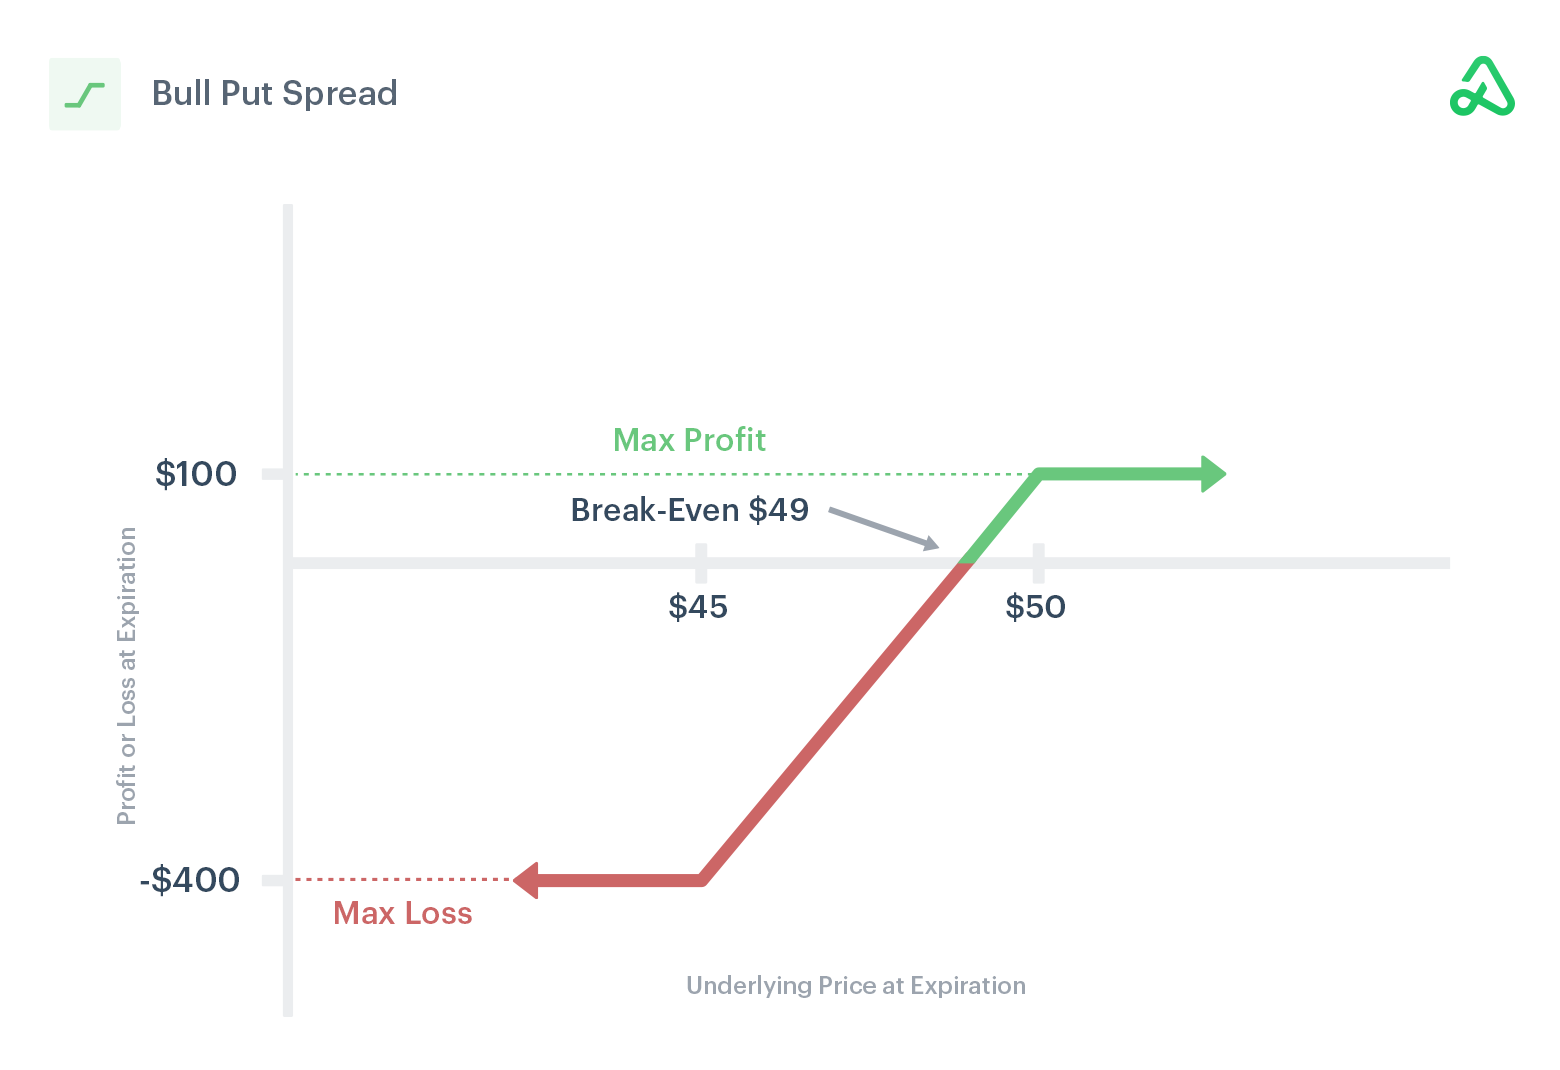 Bull put credit spread payoff diagram